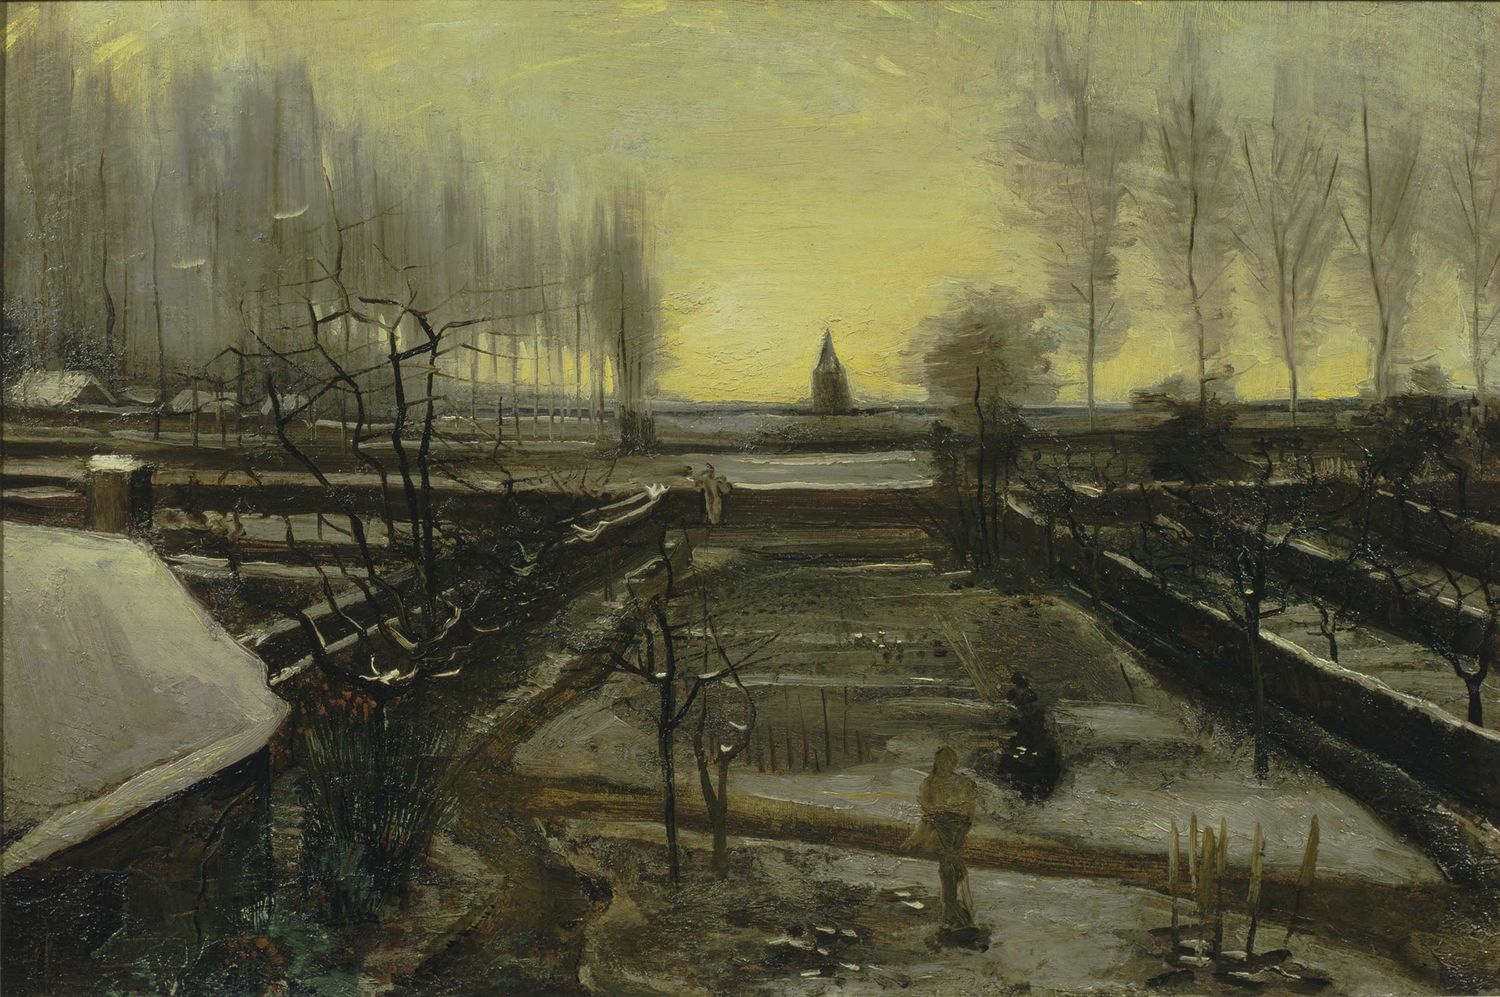 Vincent van Gogh, Garden of the Rectory at Nuenen, 1885. Oil on canvas, mounted on panel. The Armand Hammer Collection, Gift of the Armand Hammer Foundation. Hammer Museum, Los Angeles